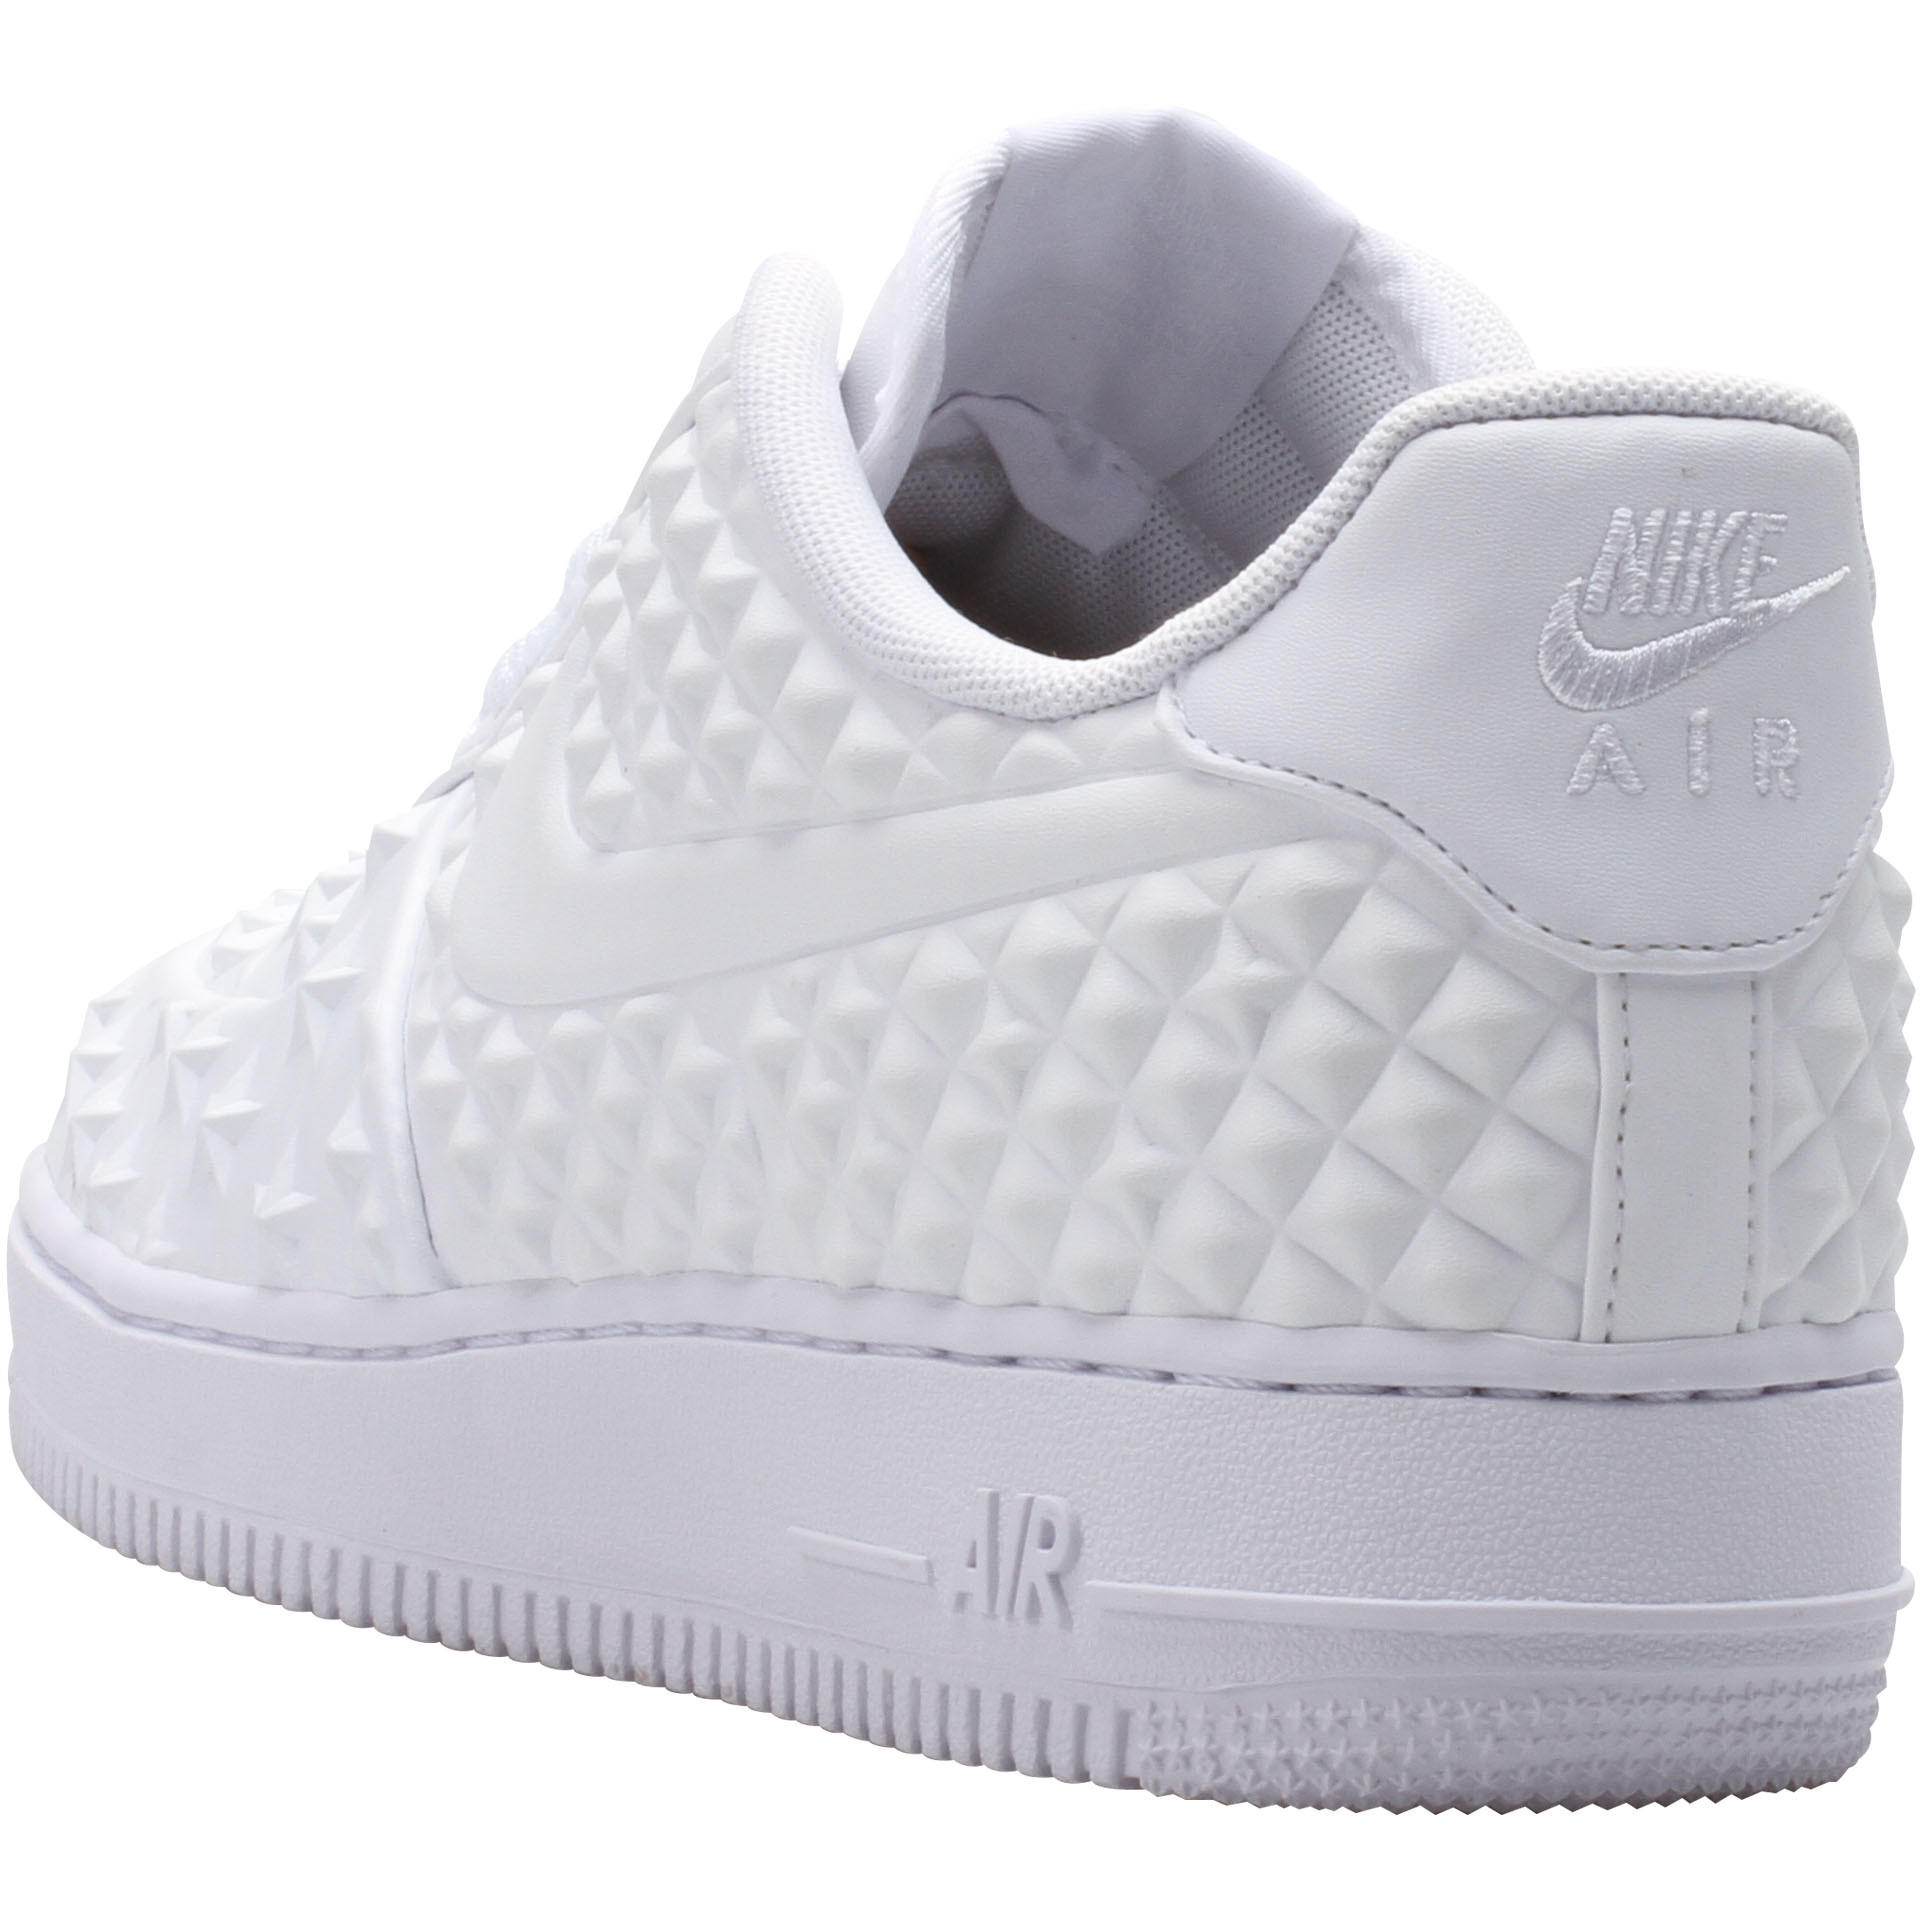 Nike Air Force 1 LV8 VT - White White from NICE KICKS 0062c632a0